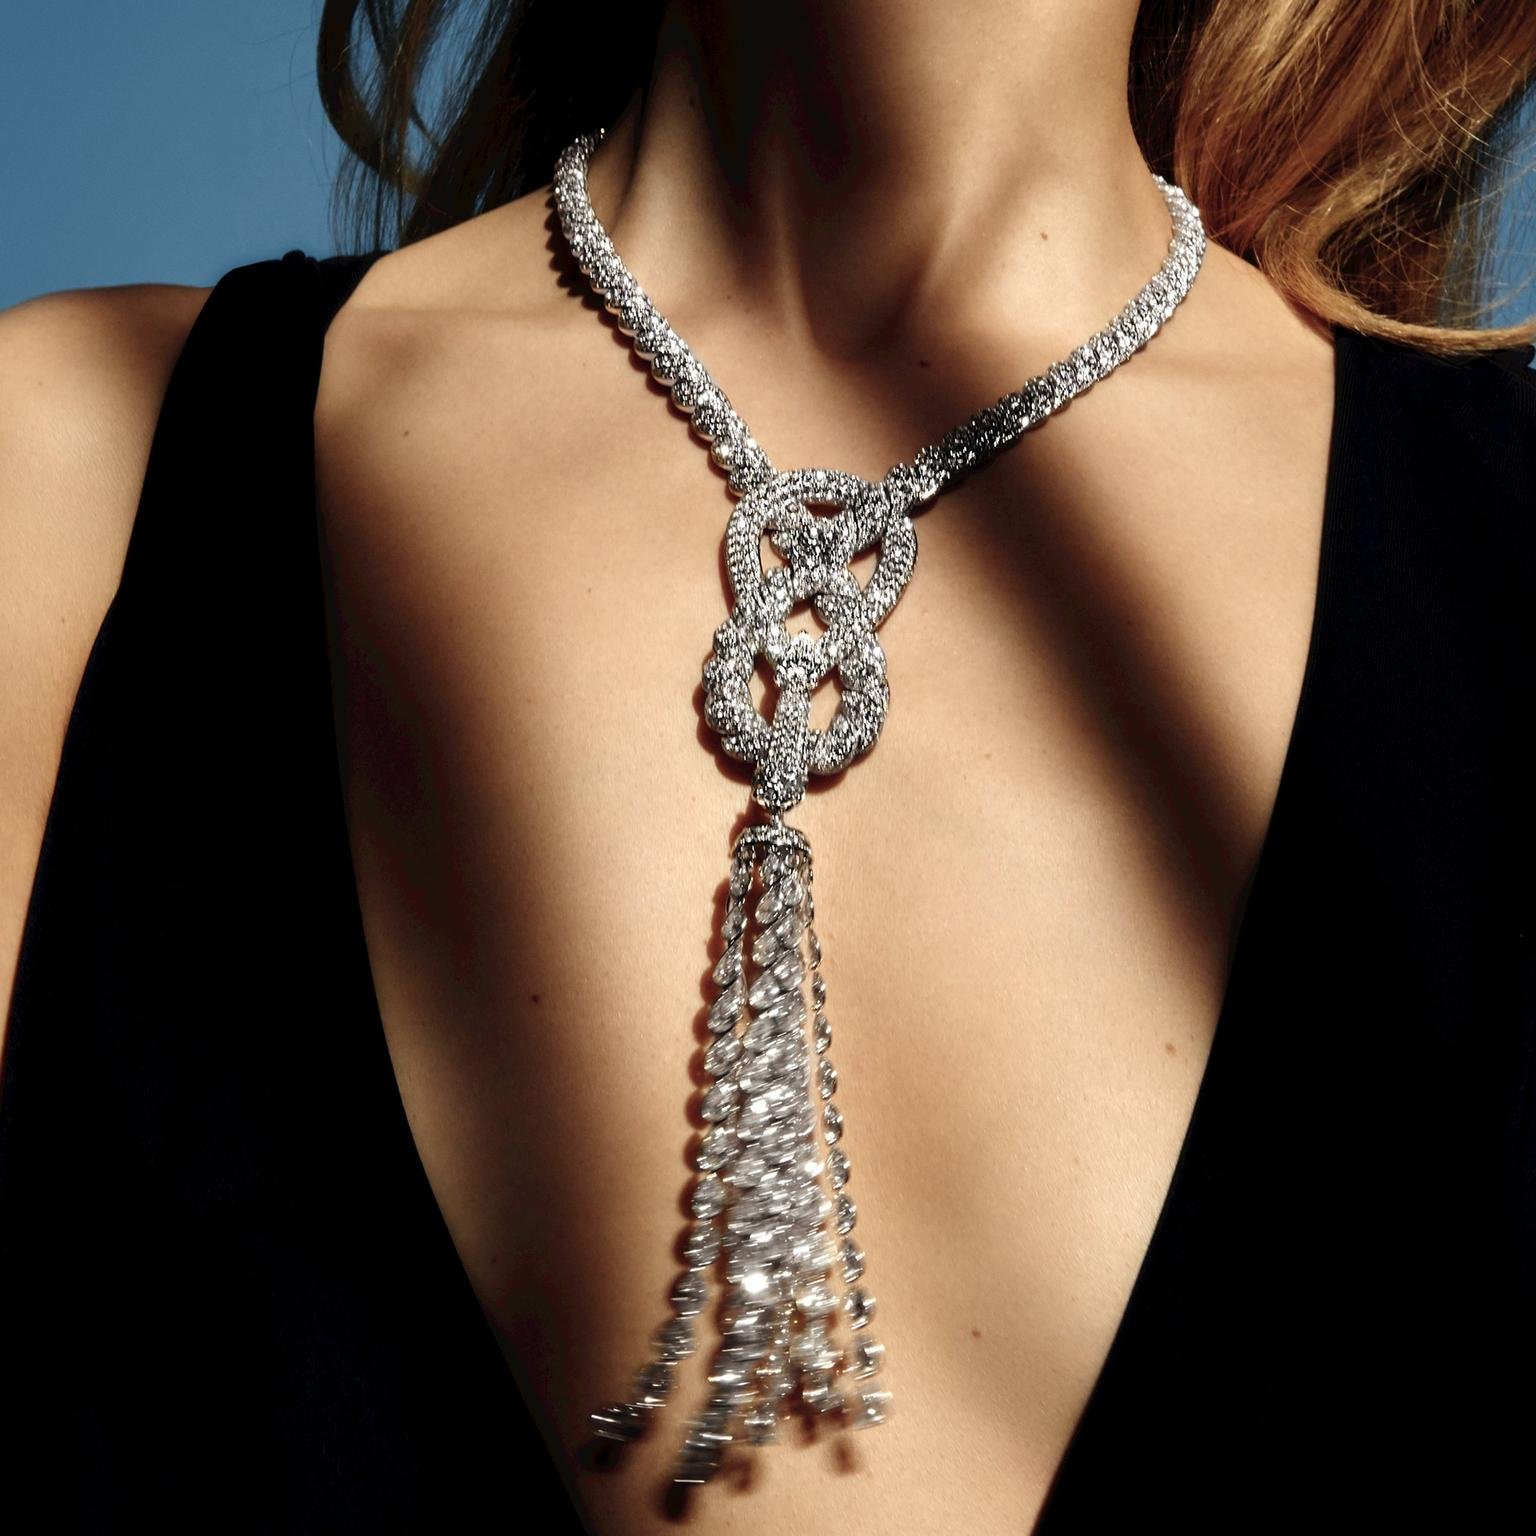 Chanel Endless Knot necklace